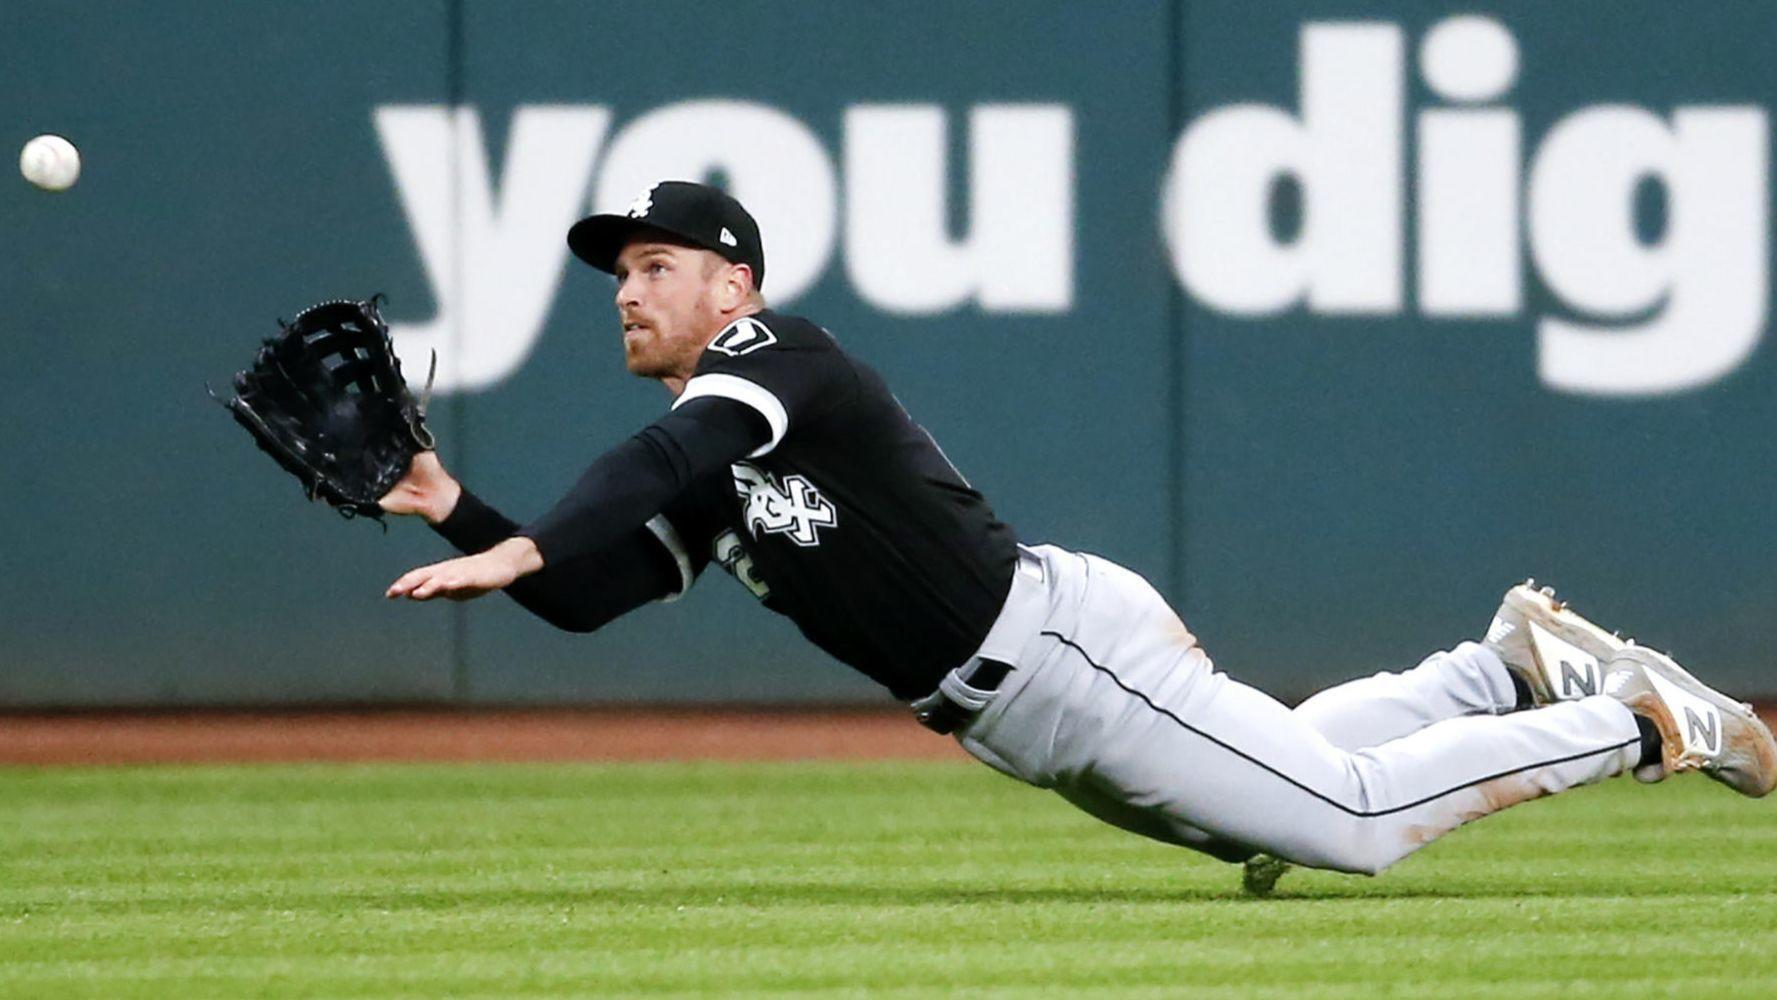 Charlie Tilson's new approach at the plate has him feeling like a threat for the White Sox